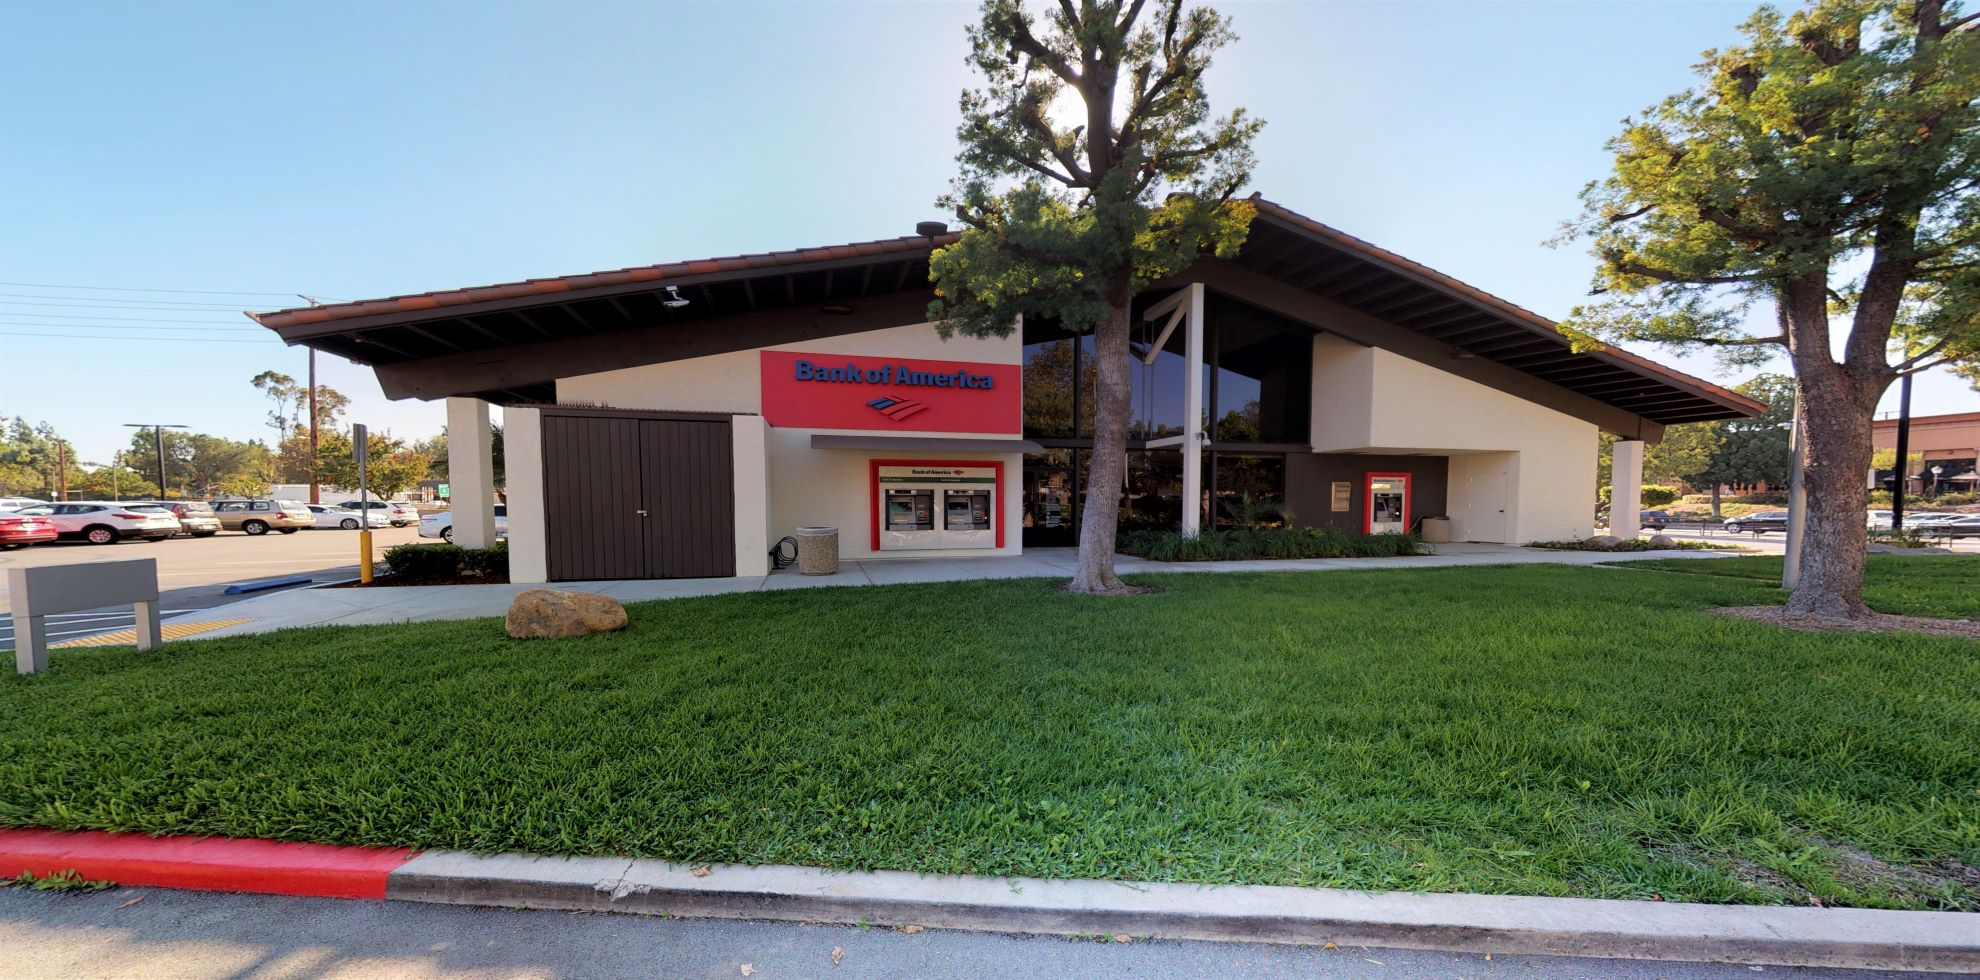 Bank of America financial center with drive-thru ATM | 290 S State College Blvd, Brea, CA 92821